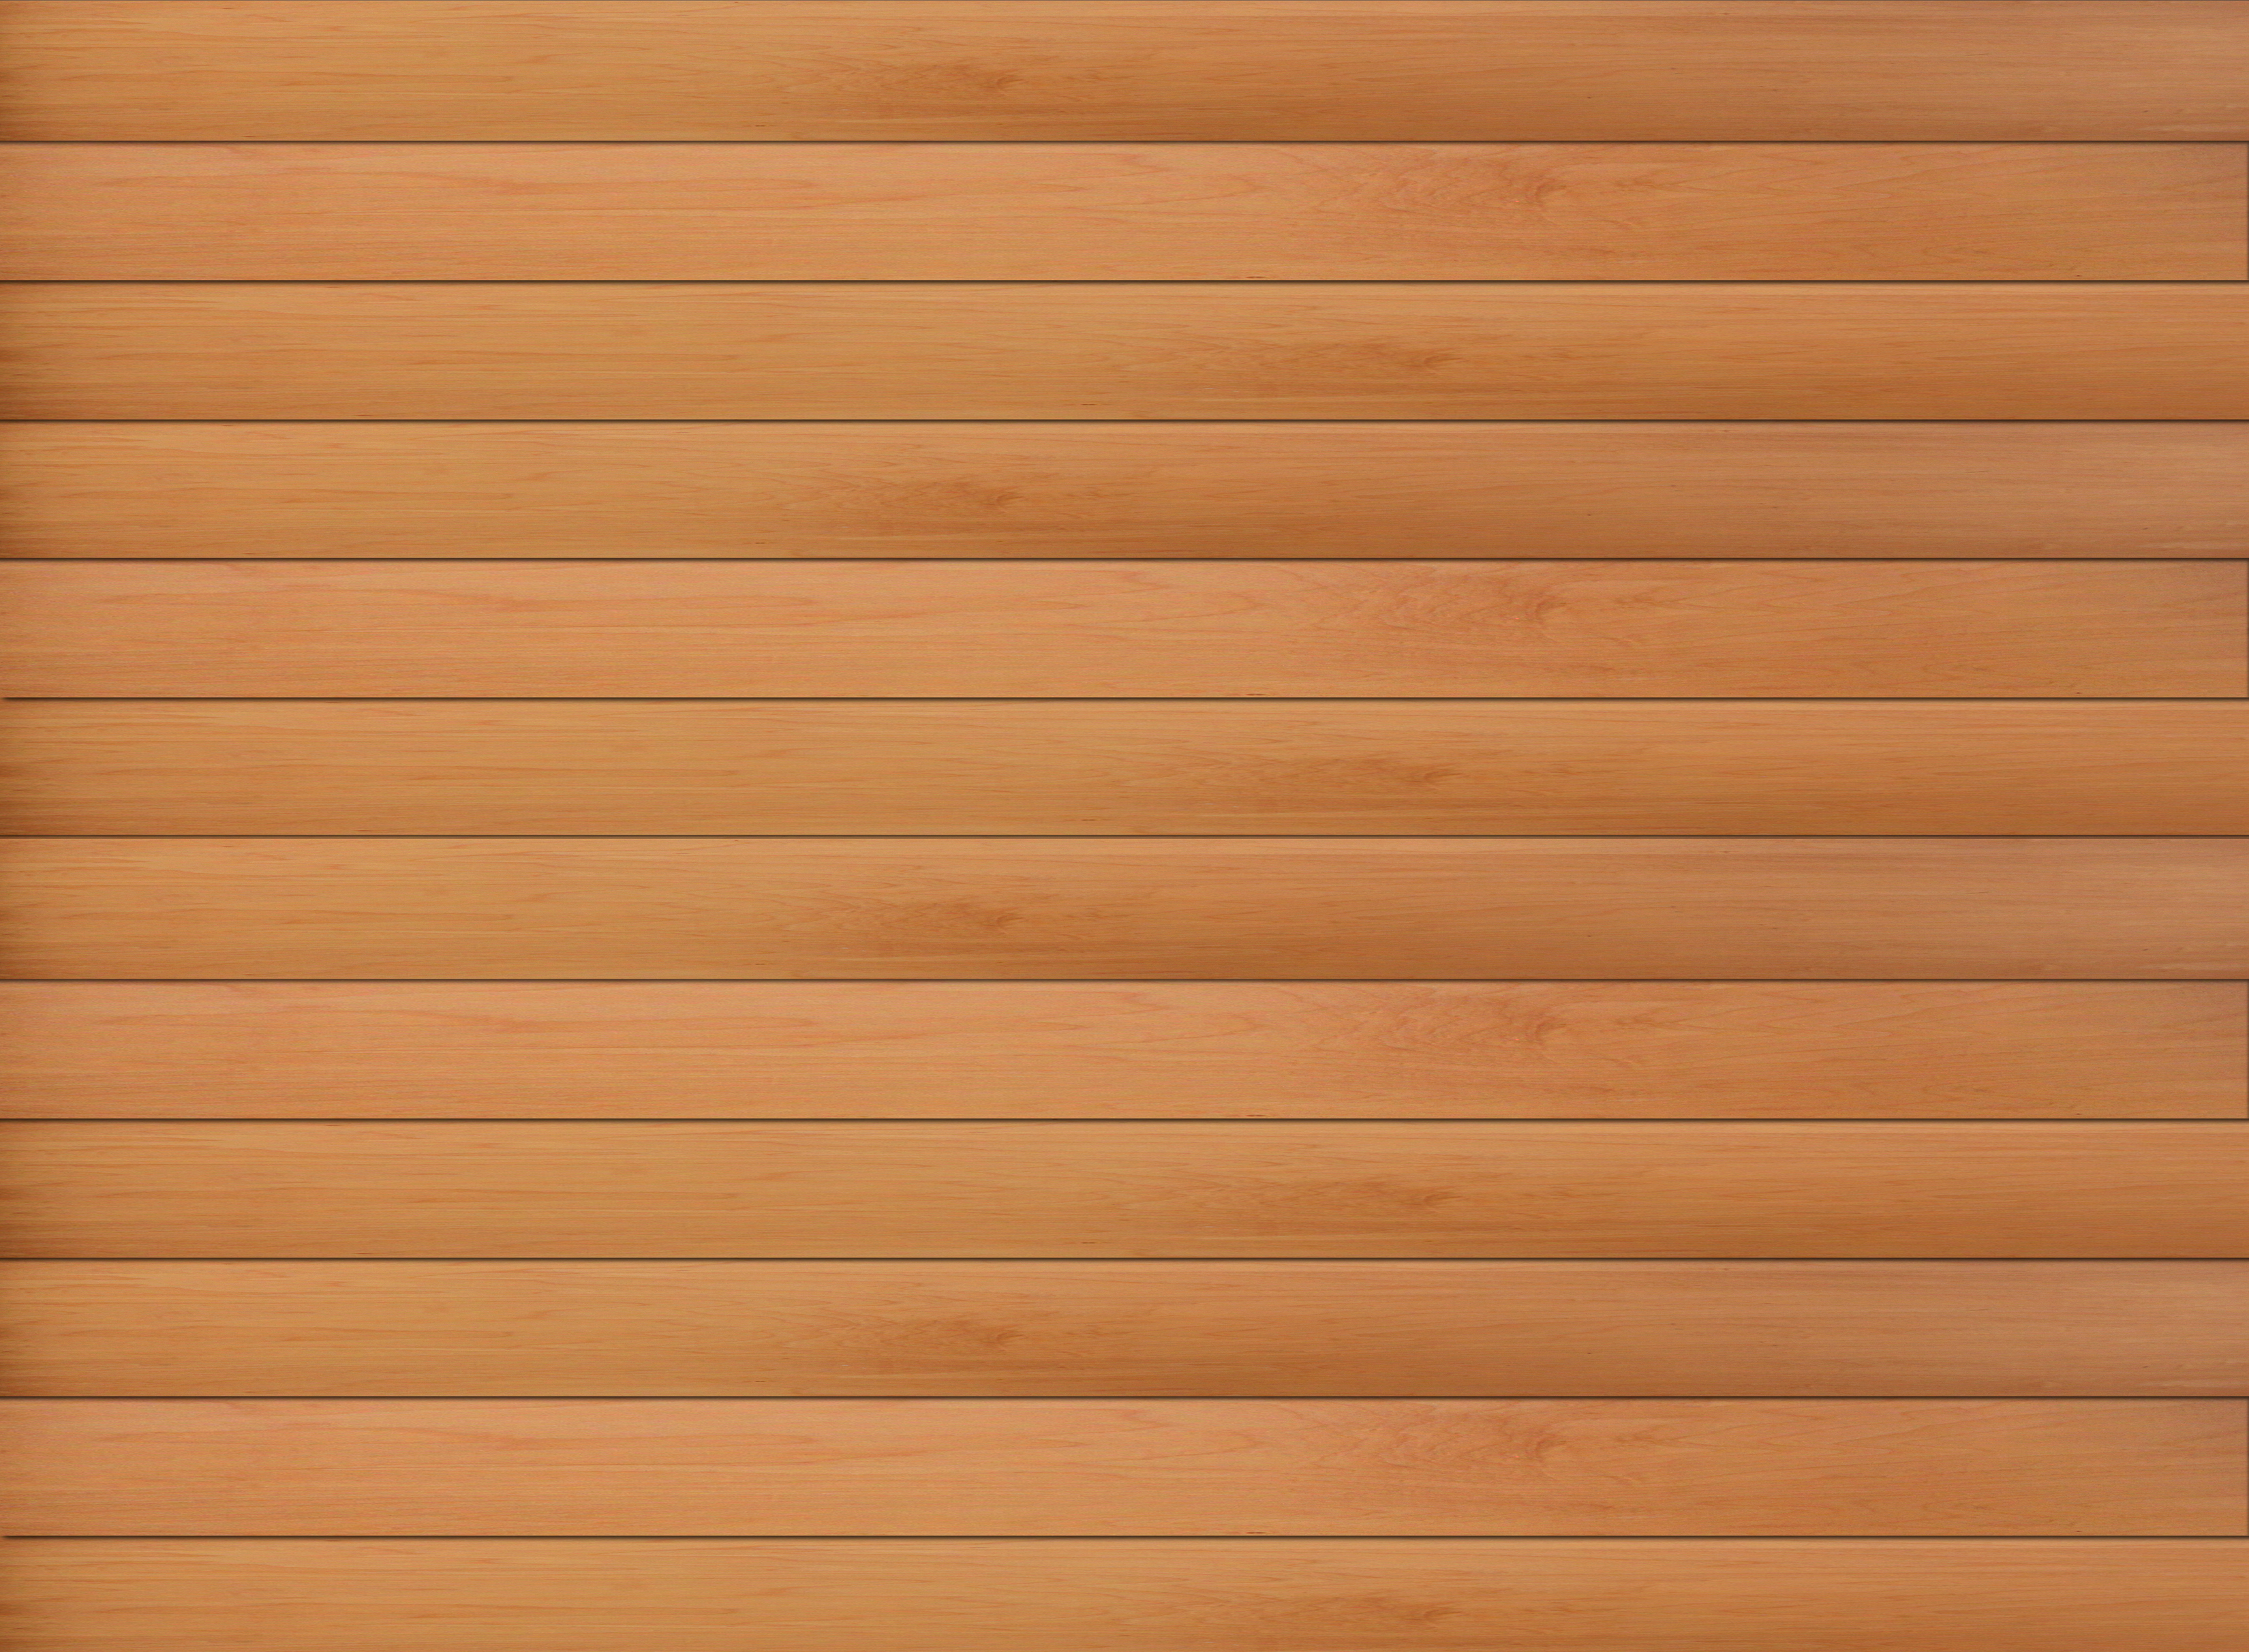 Wood siding is wood siding good for Real wood siding